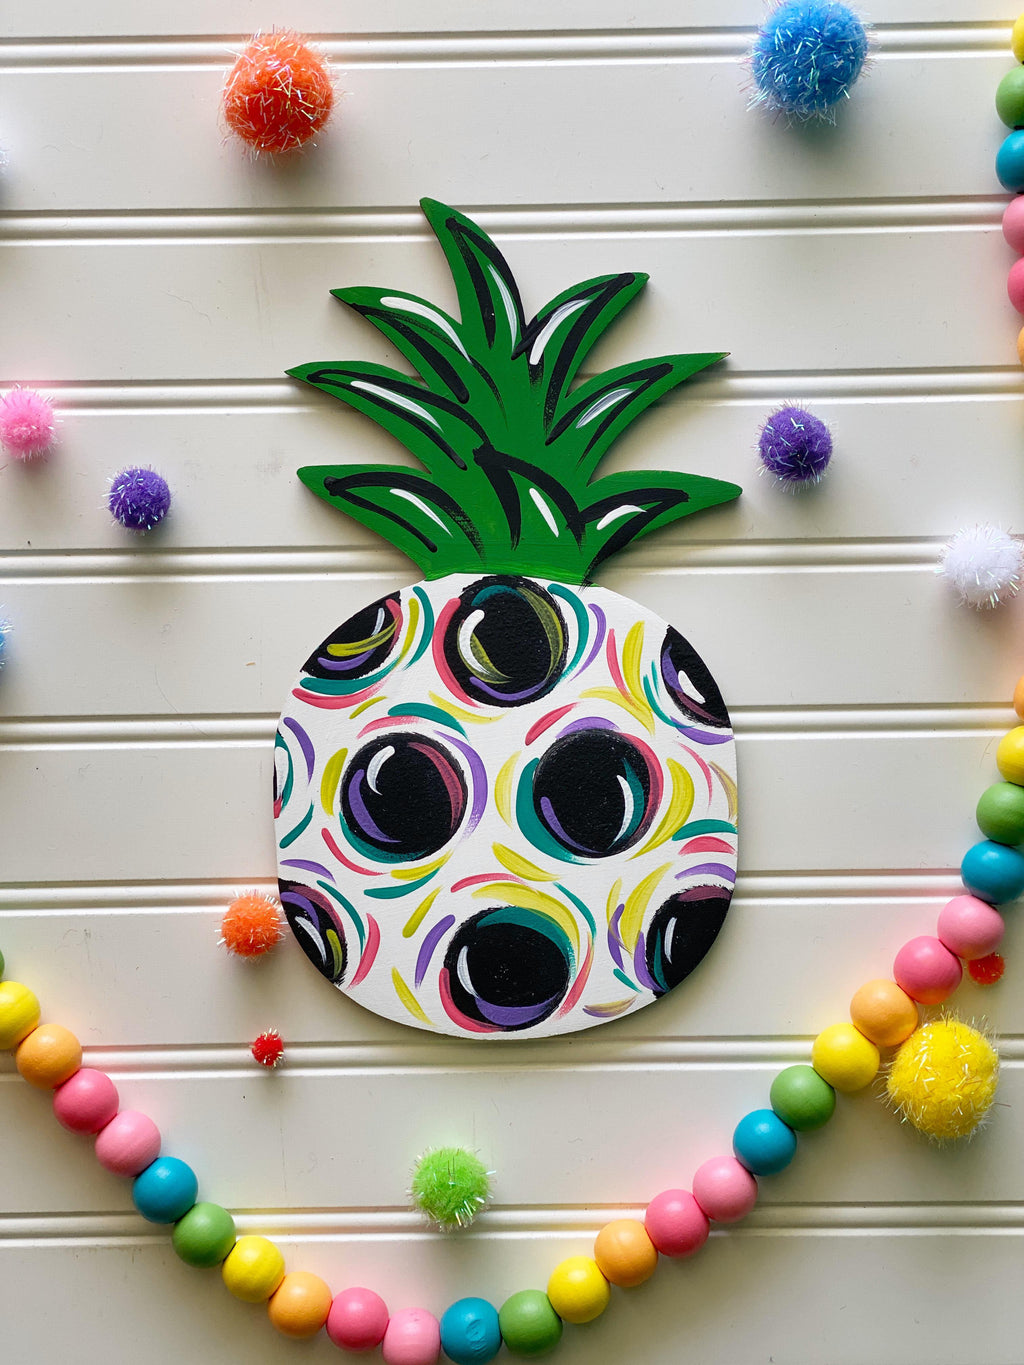 Polka Dot Pineapple Door Hanger PAINTED